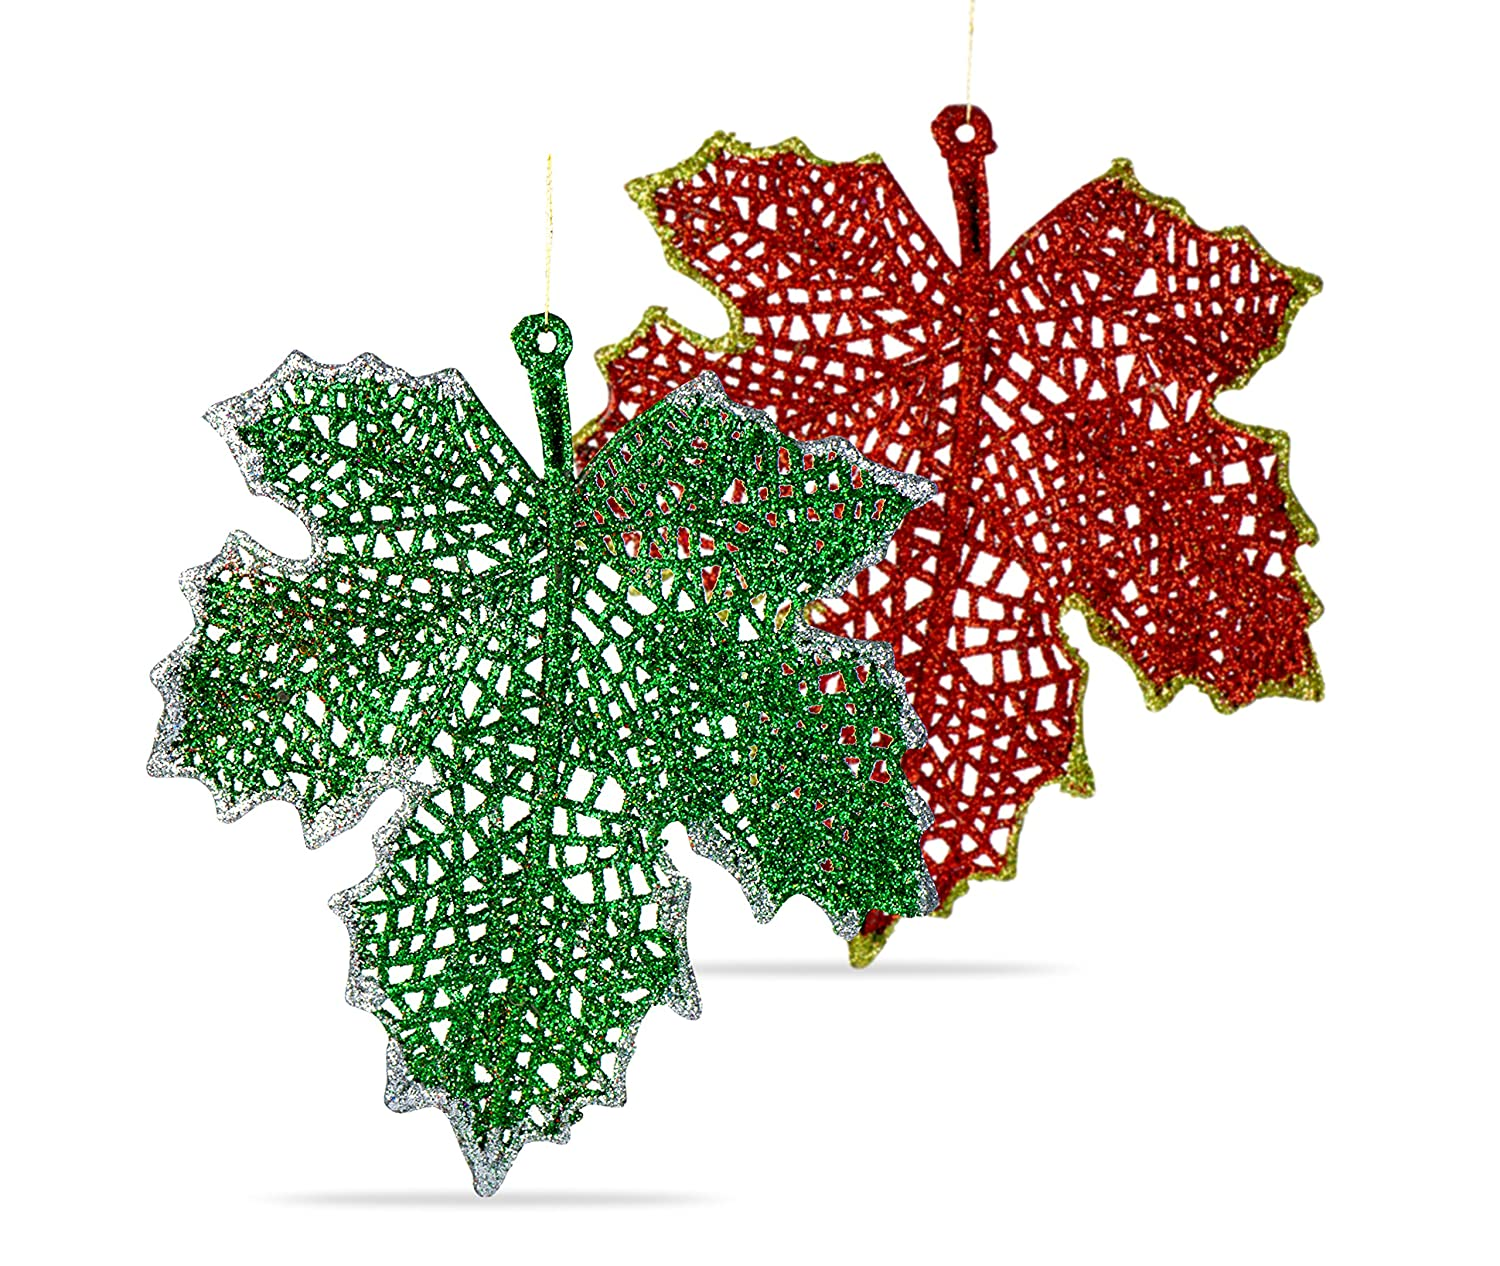 Christmas Leaves.Rn D Toys Christmas Ornament Leaves Shatterproof Hanging Ornaments For Christmas Tree Indoor And Outdoor Christmas Holiday Home Decoration Red